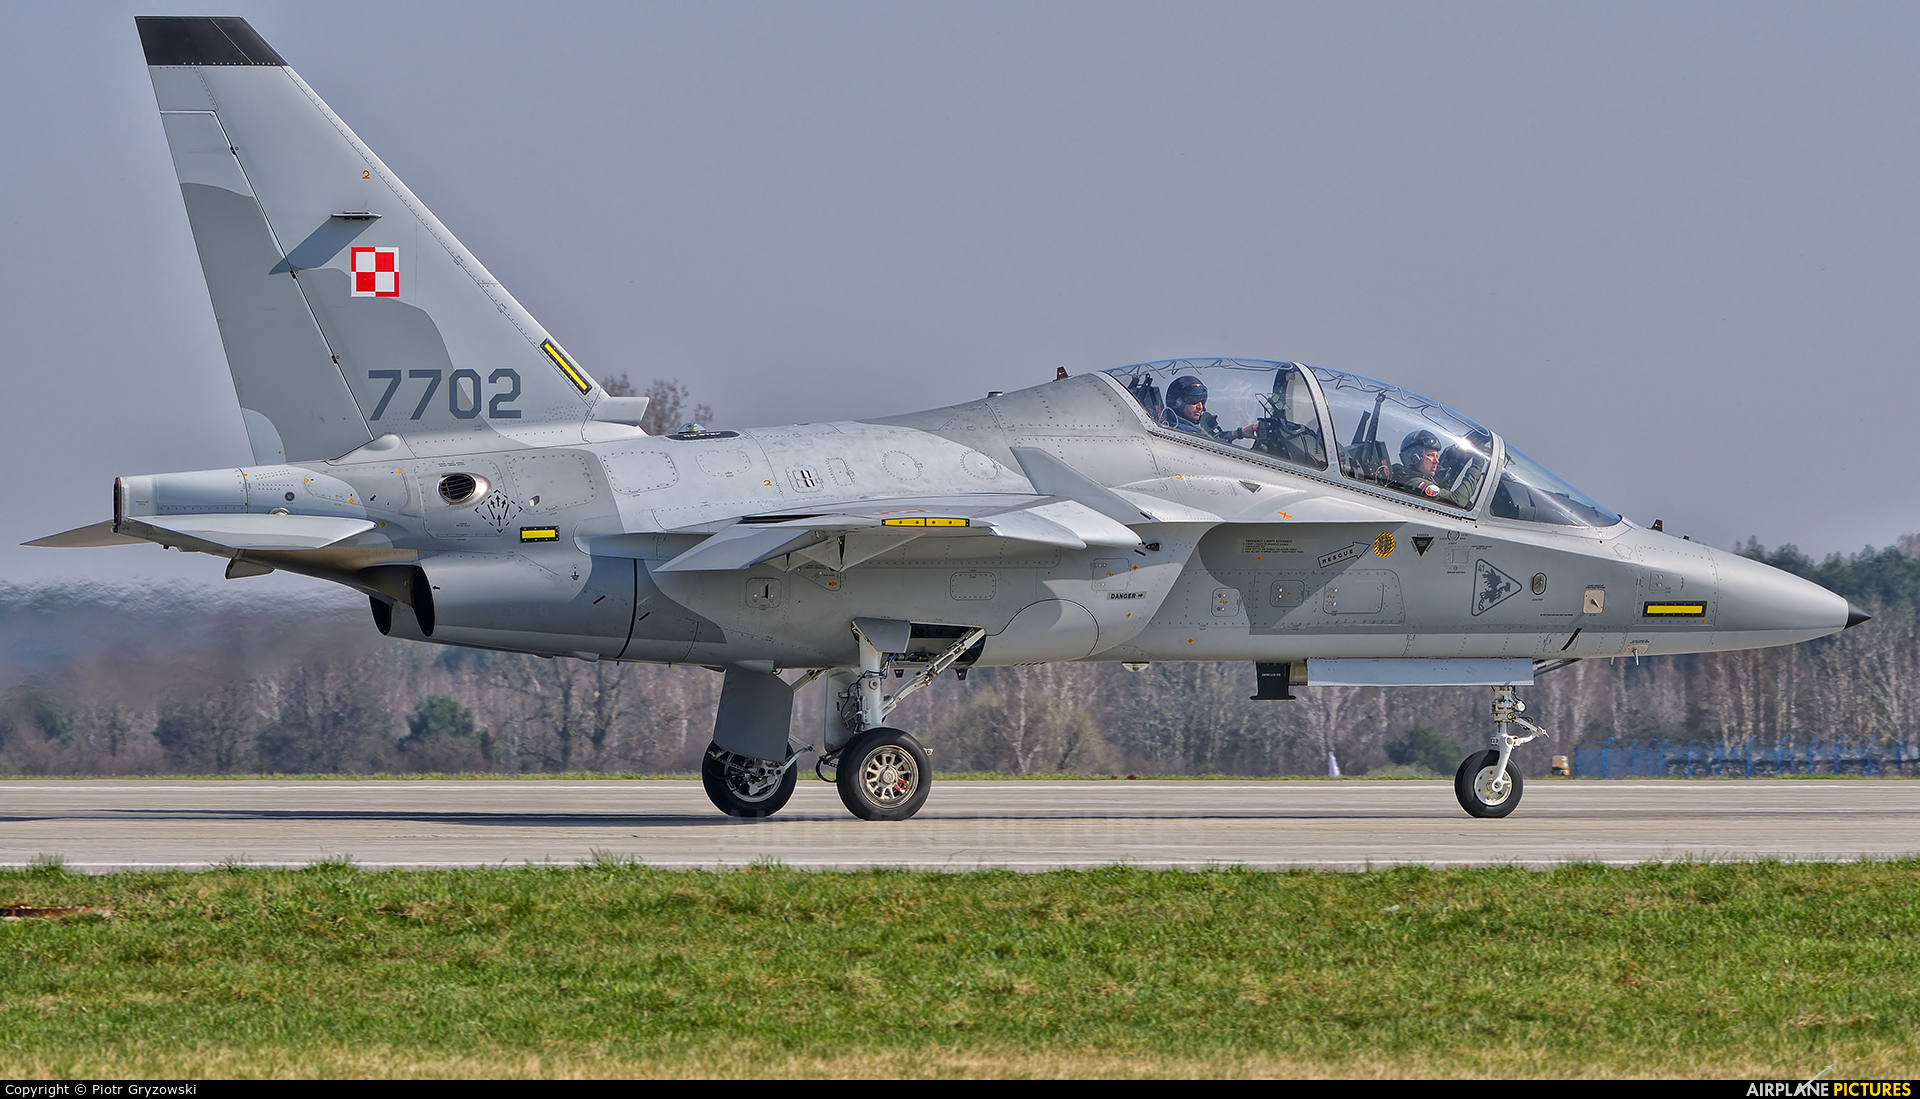 Poland - Air Force 7702 aircraft at Dęblin